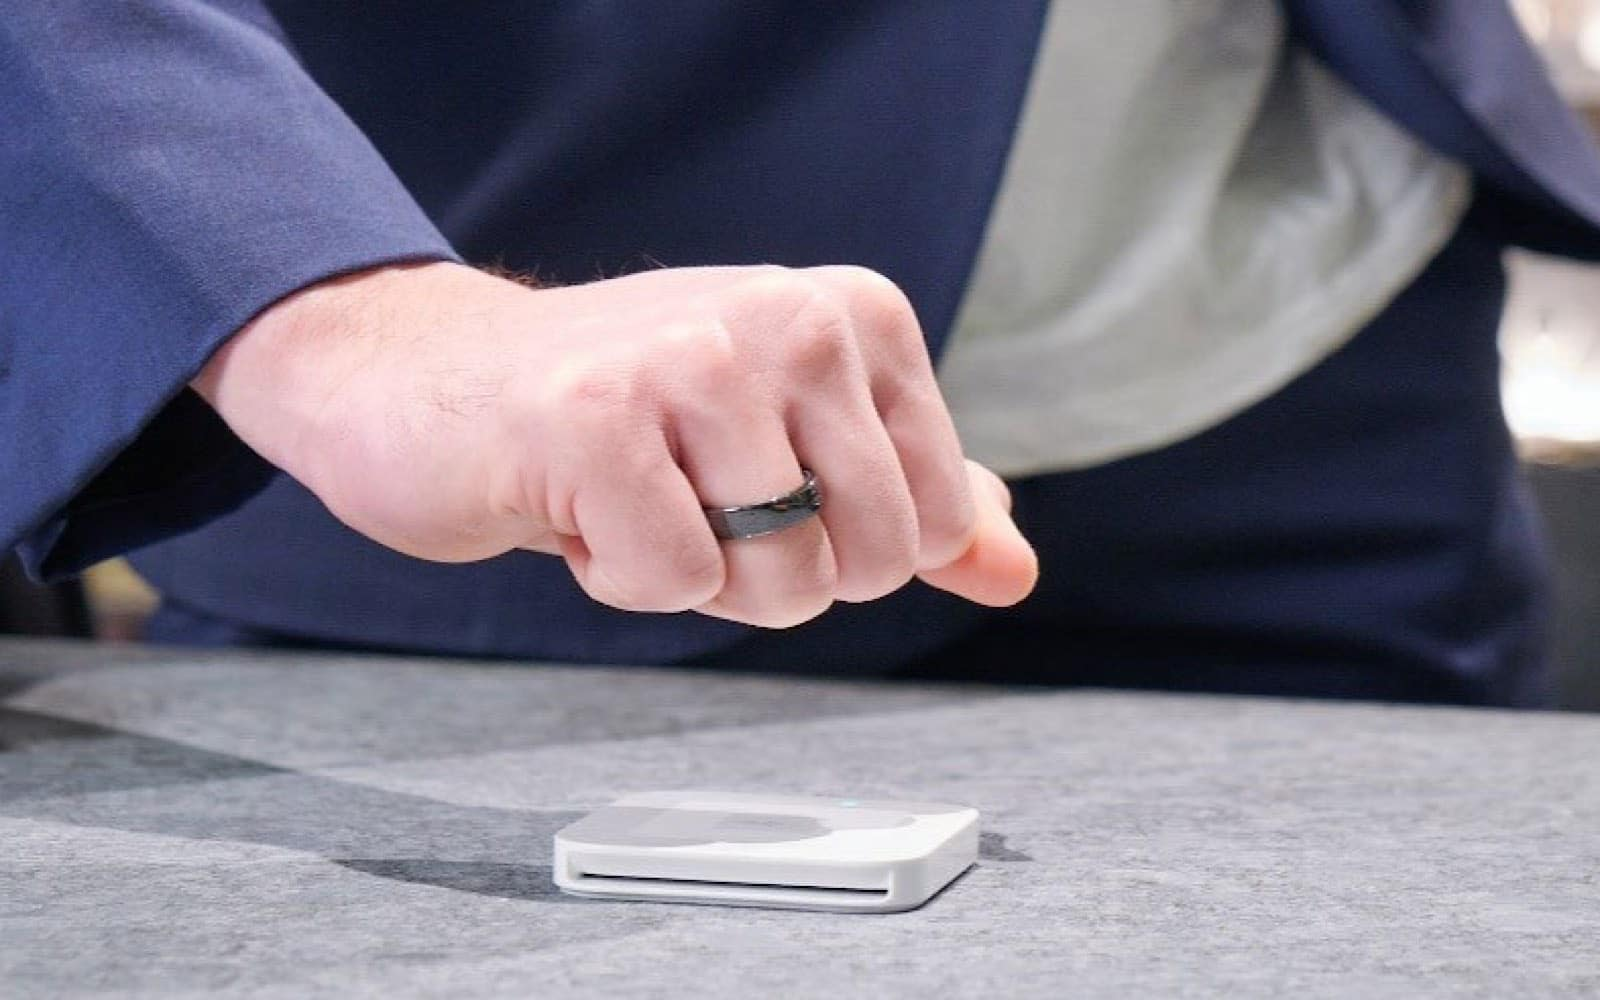 Paying with Evering's NFC payment ring